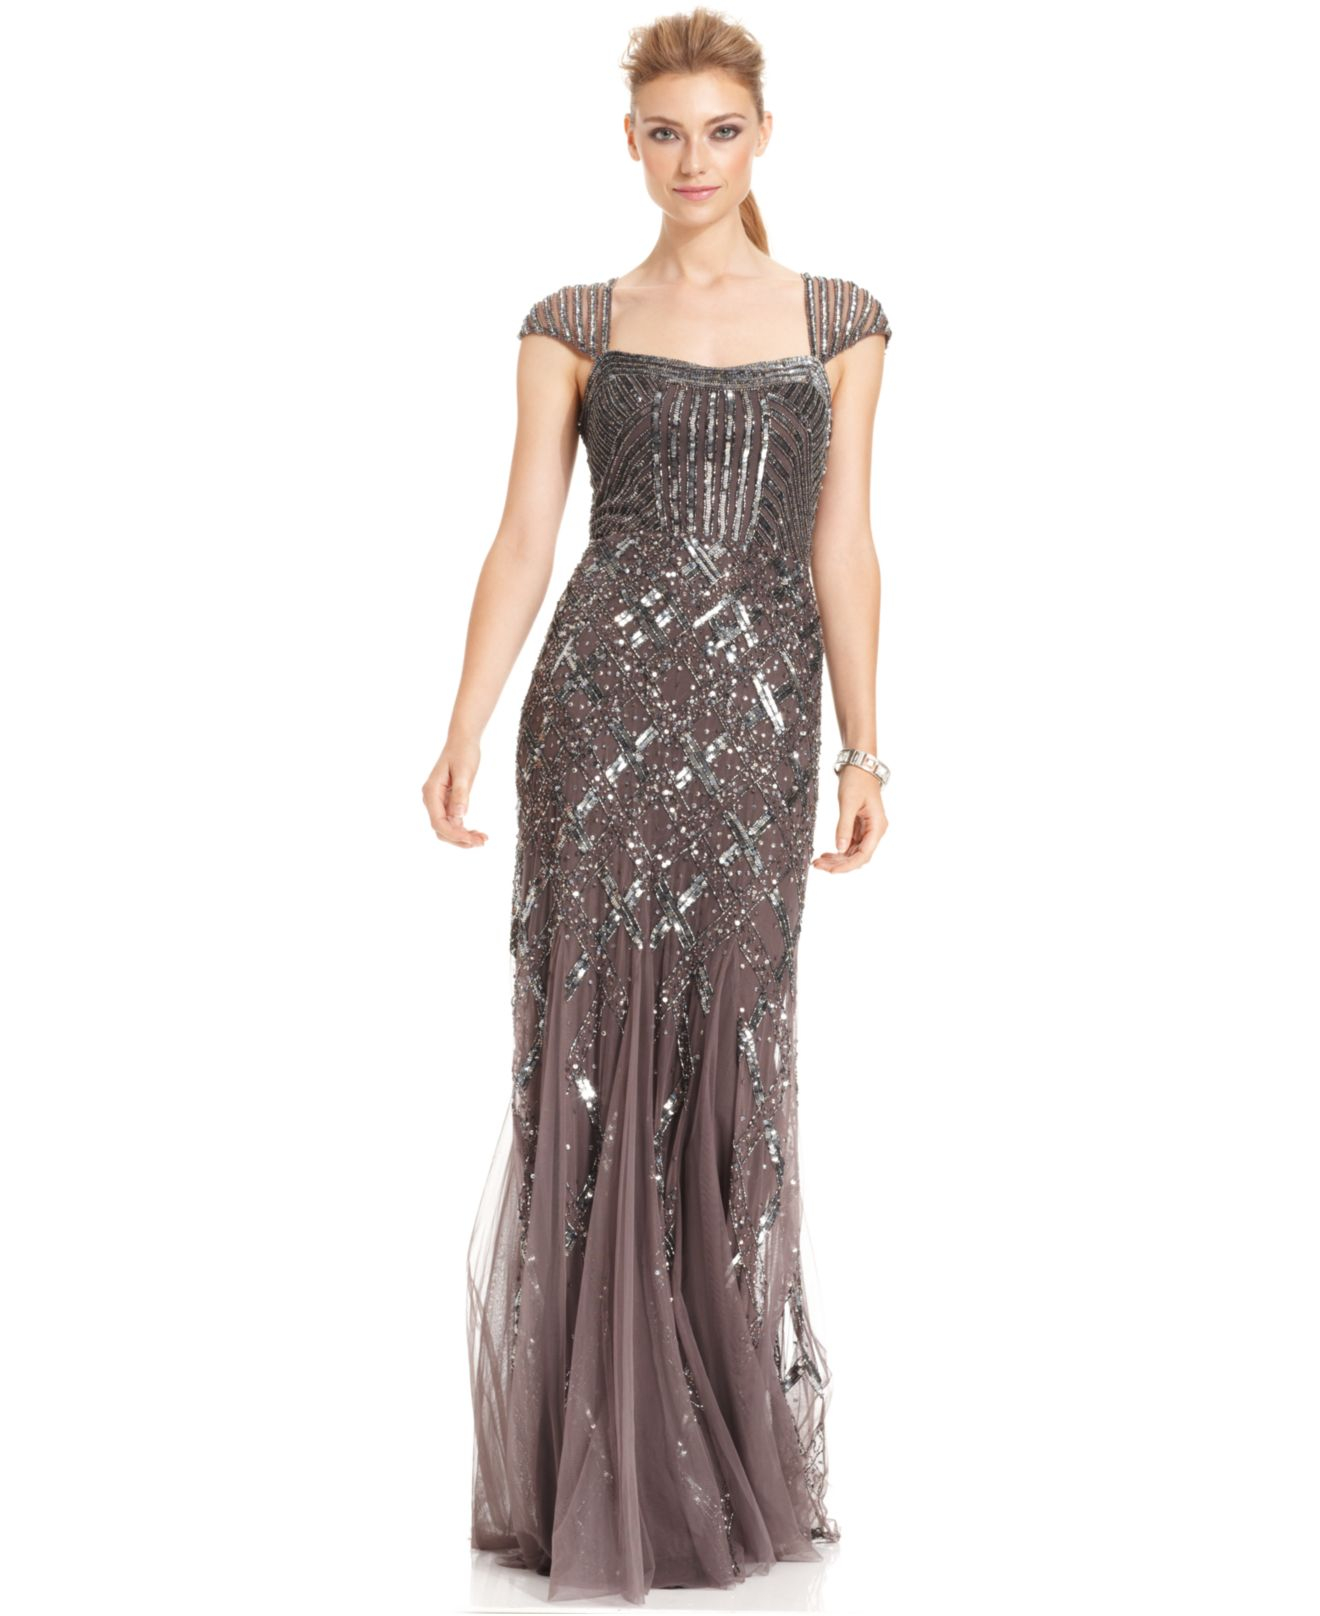 Lyst - Adrianna Papell Cap-Sleeve Sequined Gown in Metallic